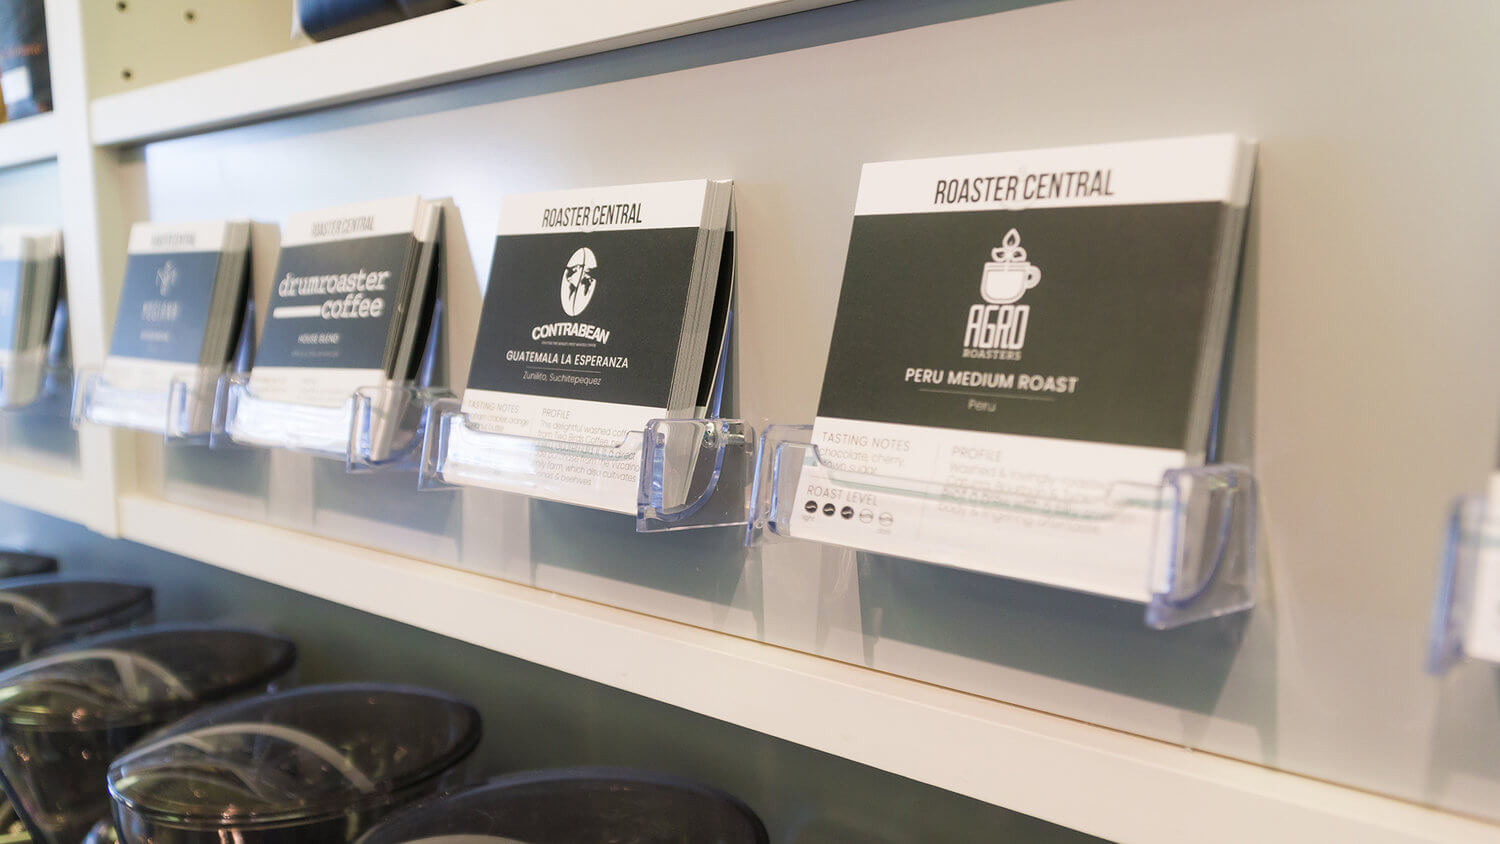 Over 40 local and international roasters are available for you to try their blends at the Roaster Central.